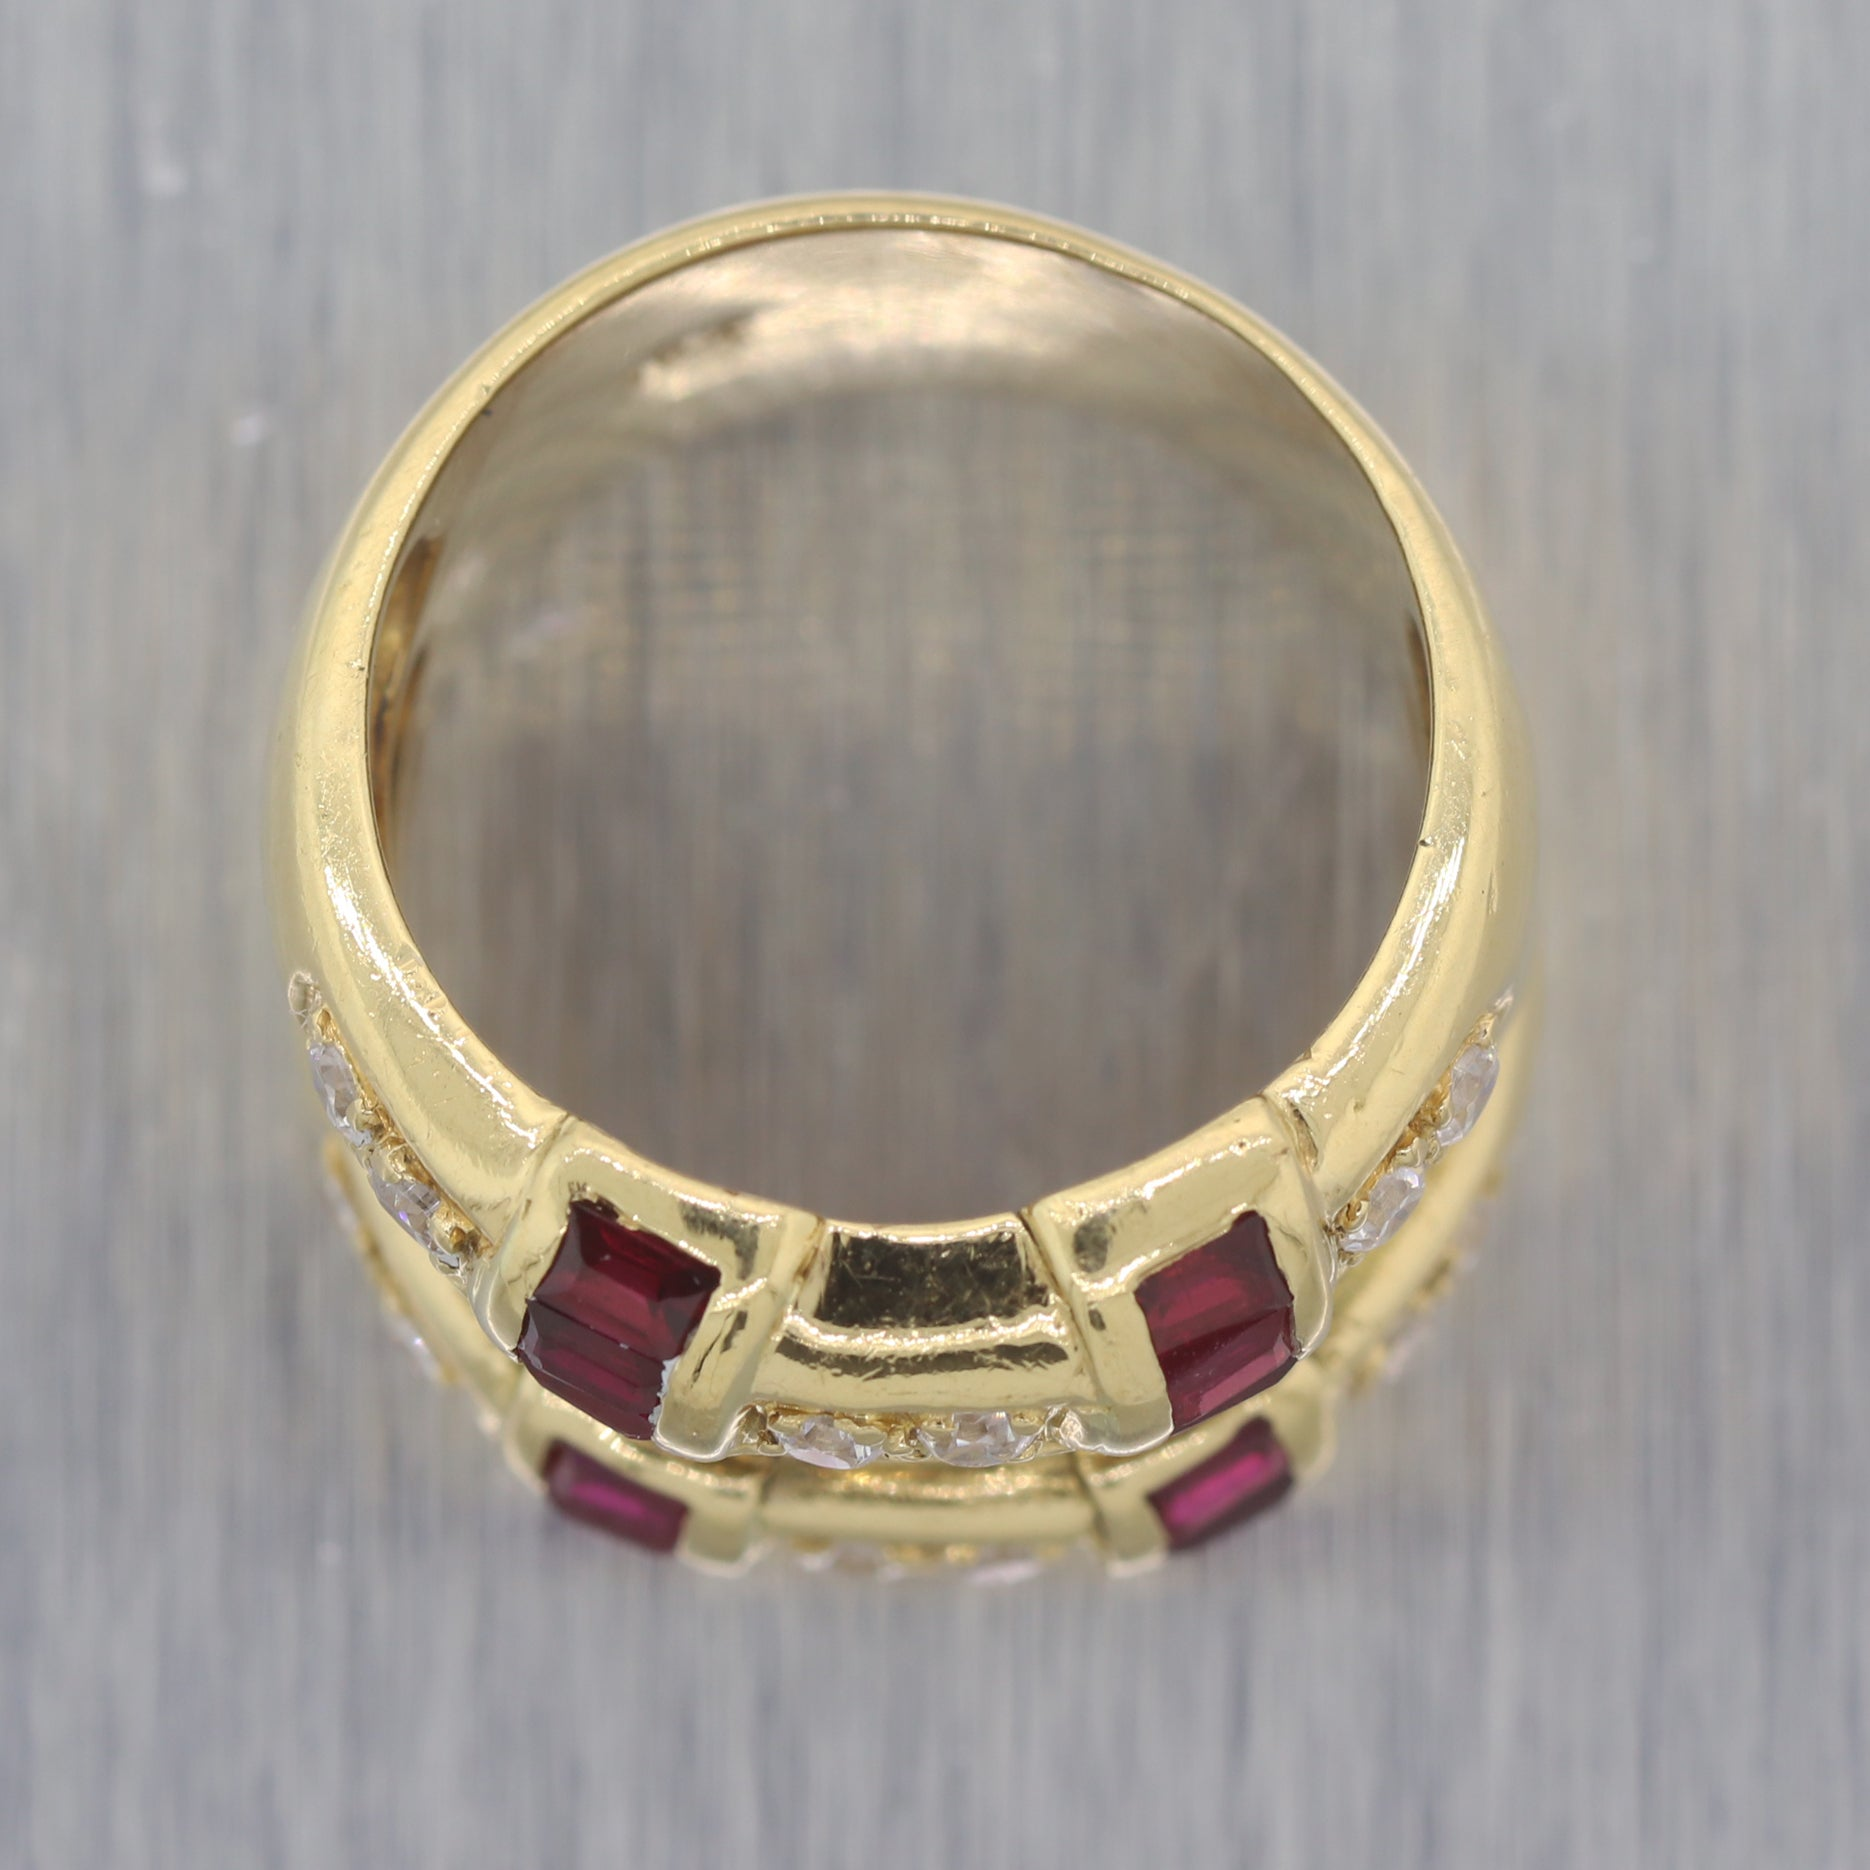 Vintage Estate 18k Yellow Gold 1.74ctw Sapphire Diamond Ruby Wedding Band Ring